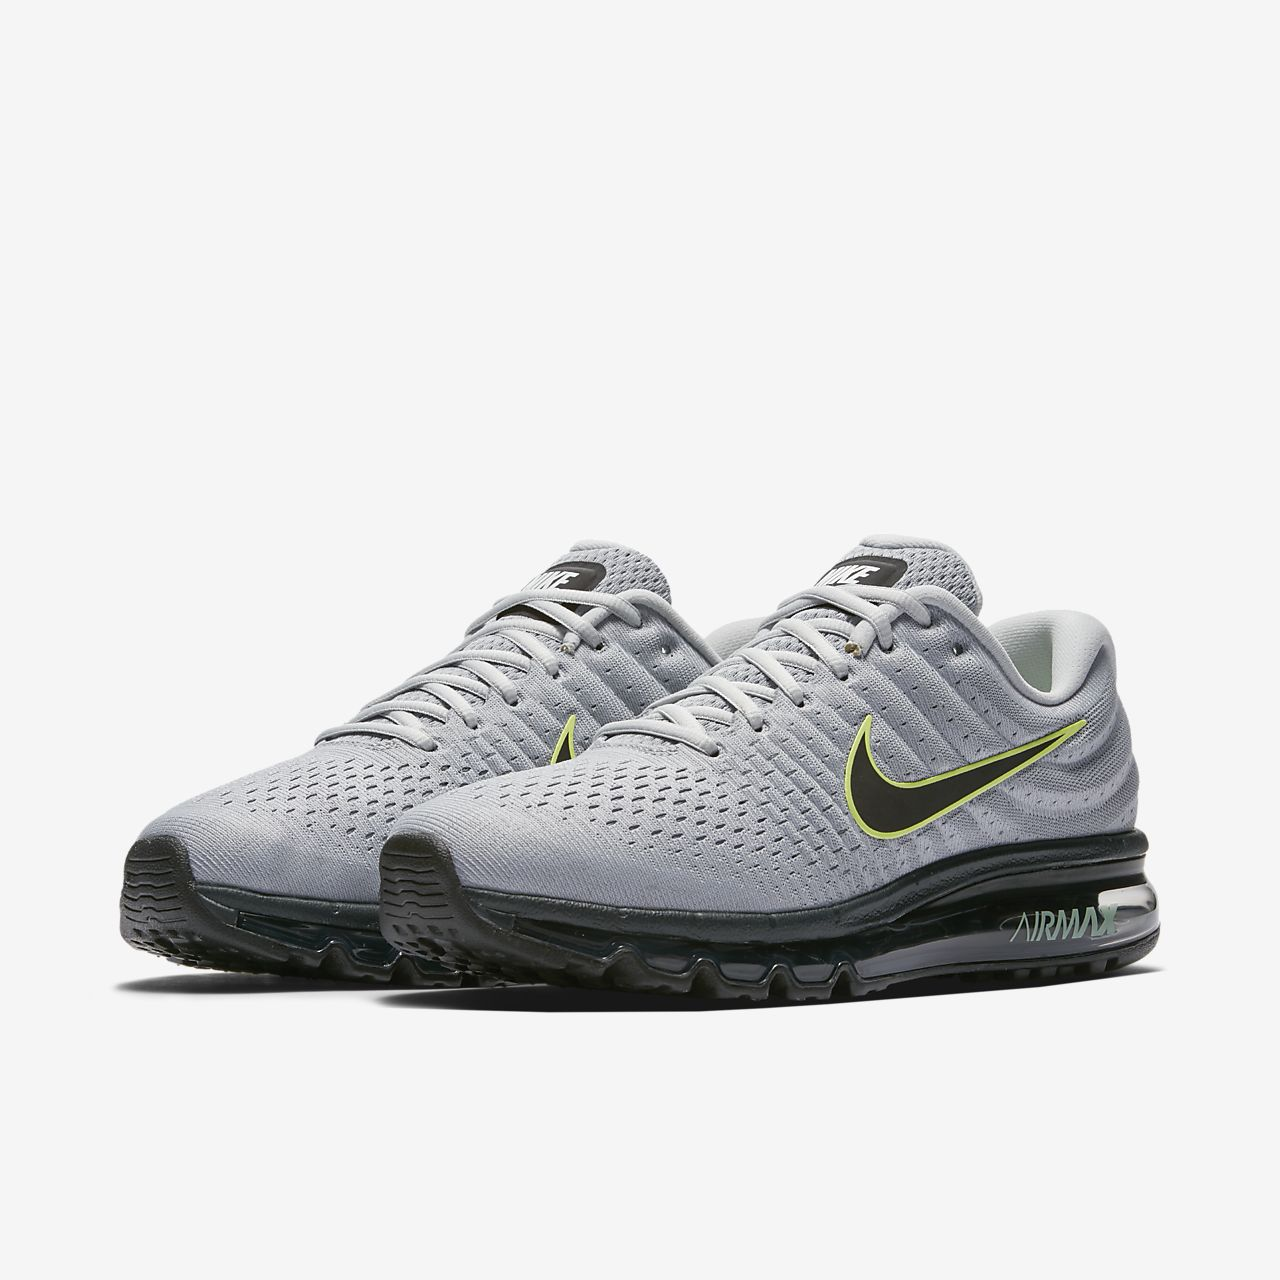 Nike Air Max 2017 Herrenschuh